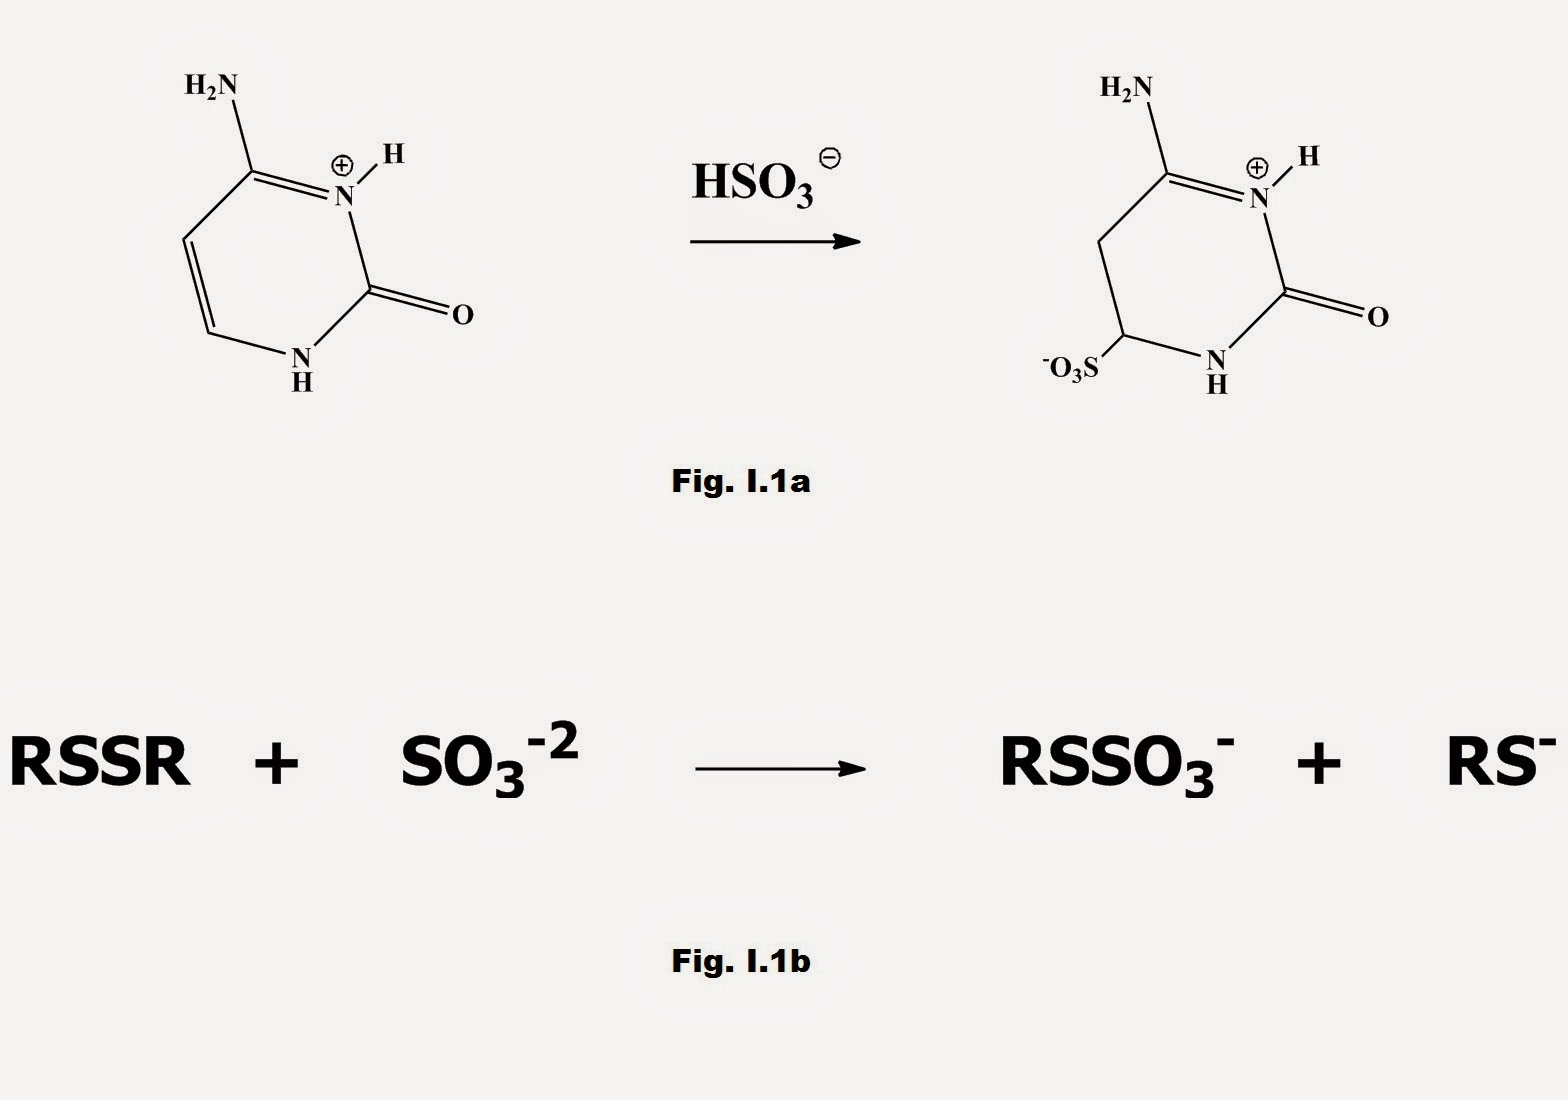 Fig. I.1 a) Pyrimidines in nucleic acids react with HSO3- to form addition compounds b) Aldehydes react with HSO3- to form addition compounds